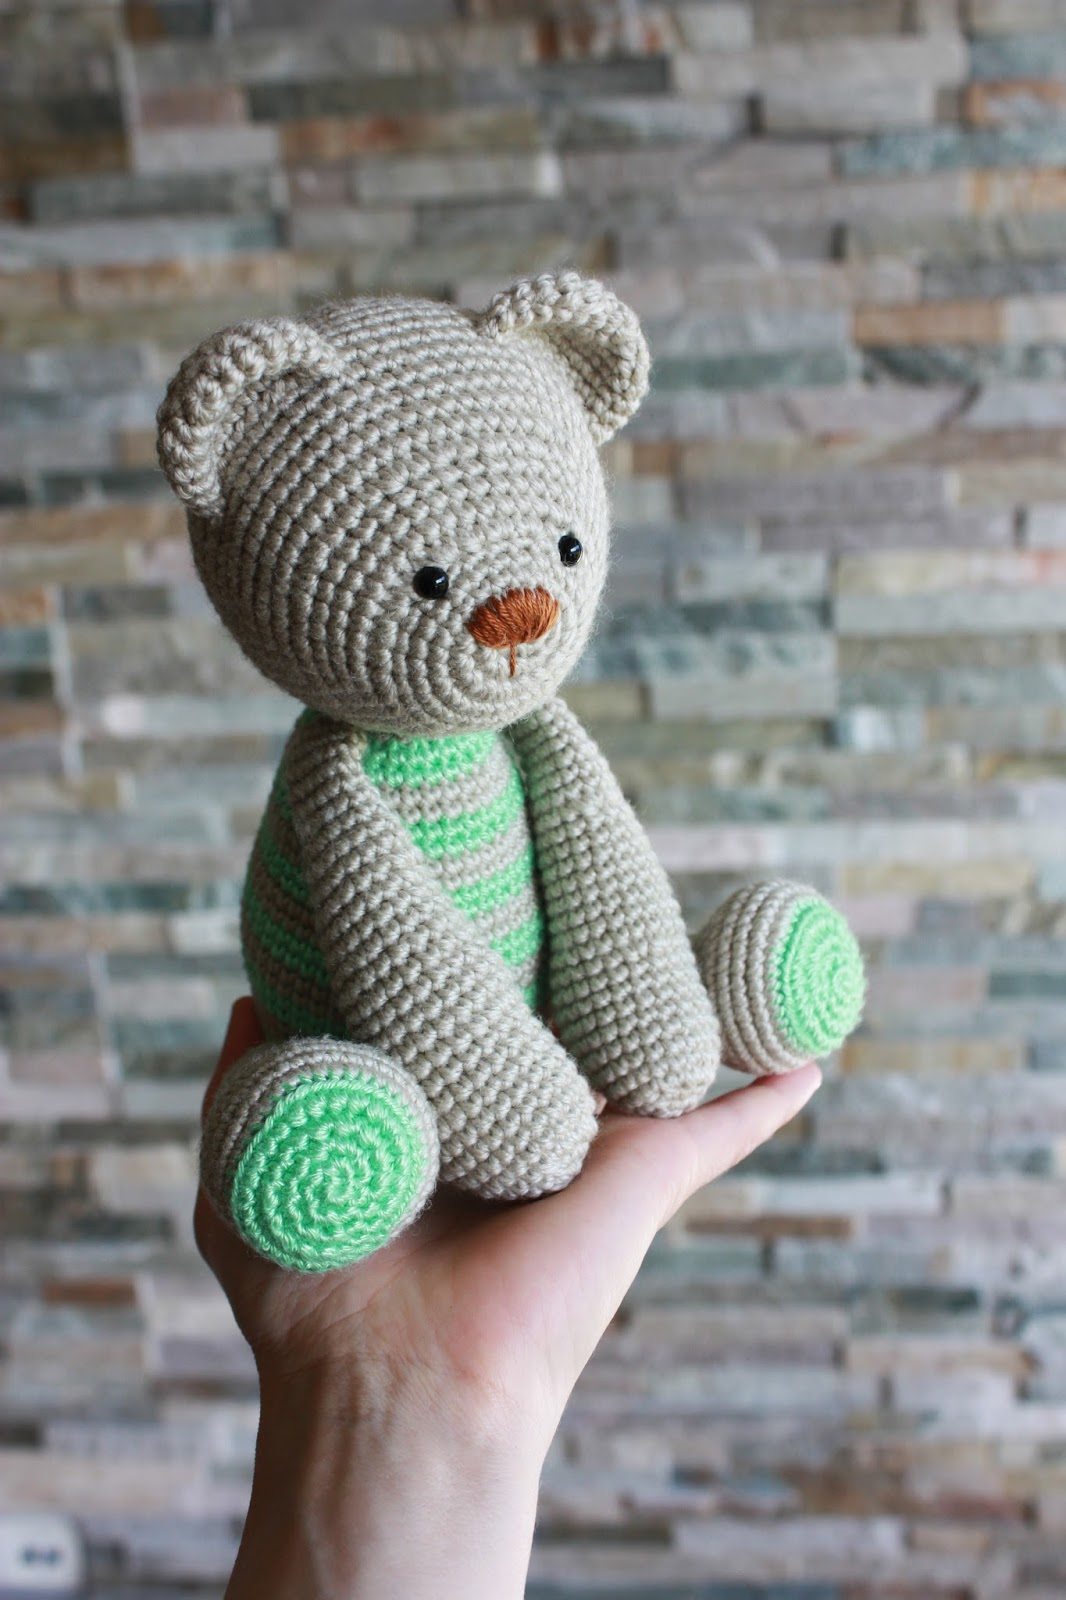 Crochet Pattern Amigurumi Bear : Amigurumi creations by Happyamigurumi